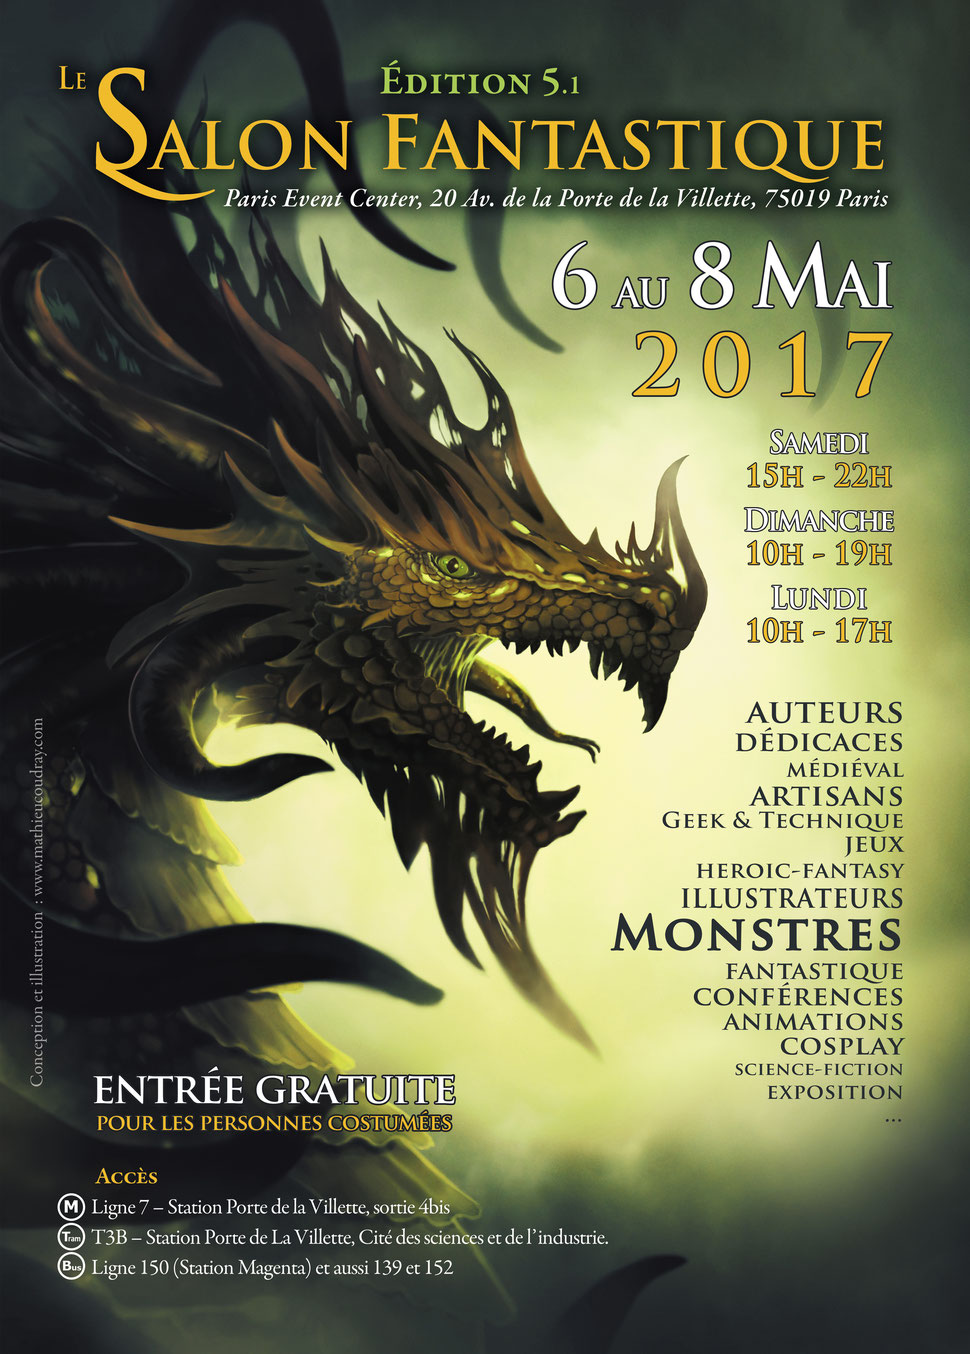 Le salon fantastique 2017